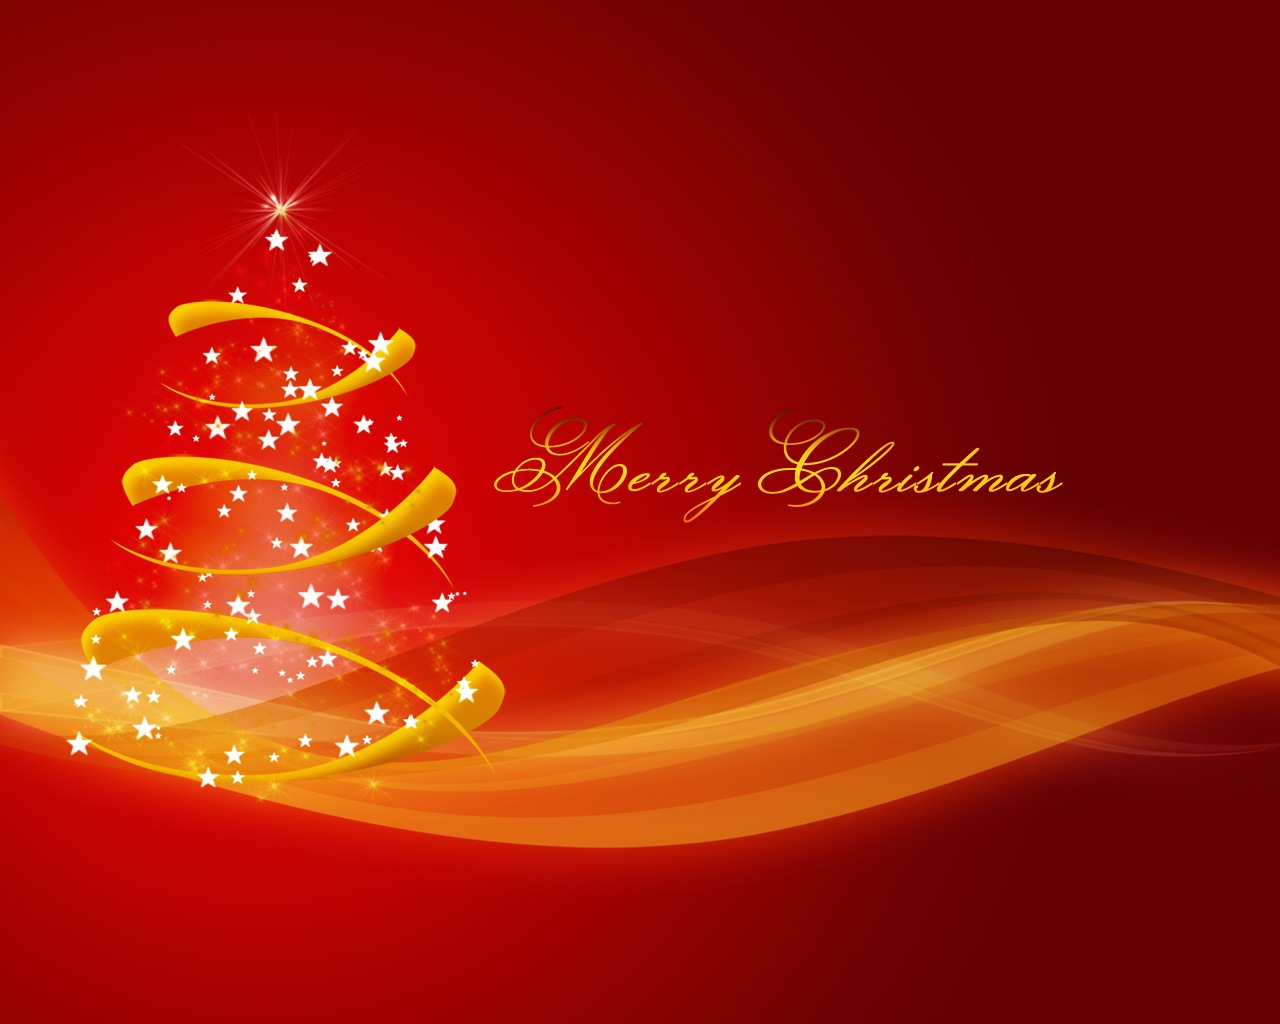 Abstract Free Christmas Wallpaper Free Wallpaper Wallpaper